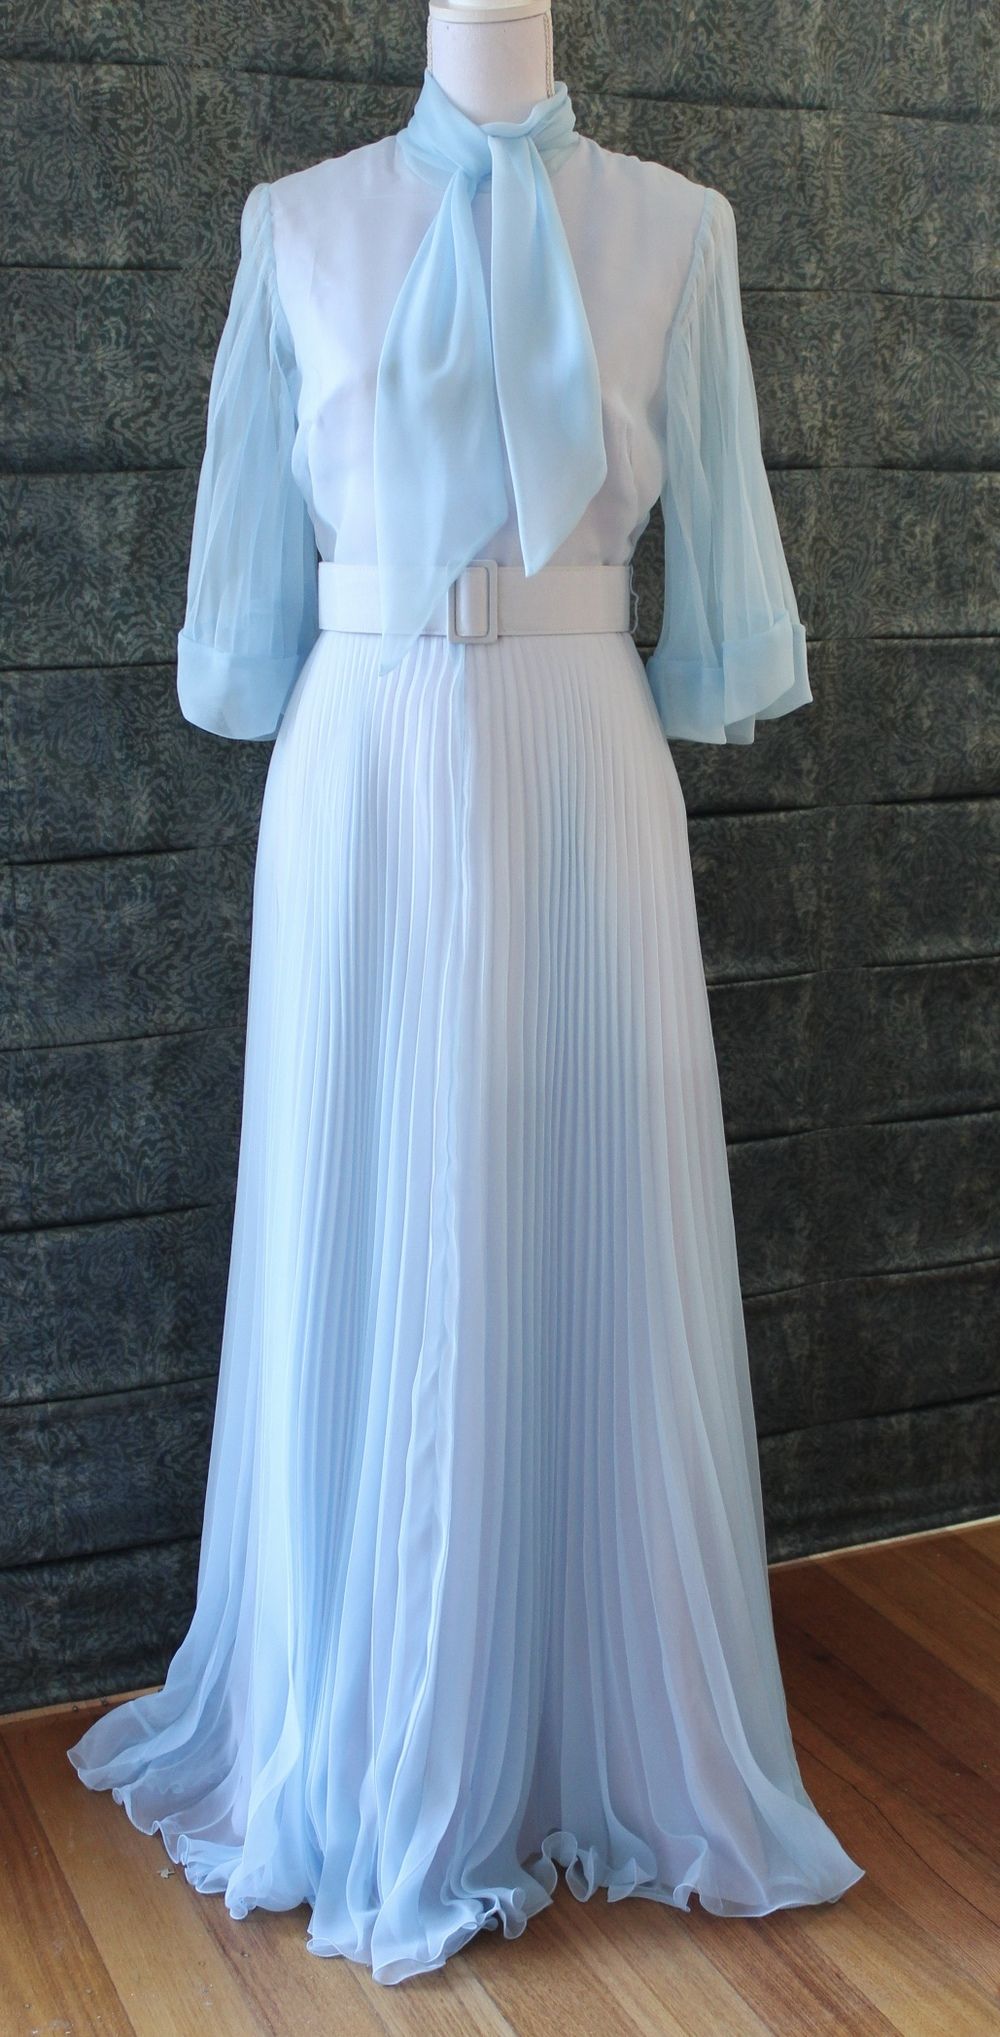 Delighted 1970S Ball Gown Images - Images for wedding gown ideas ...